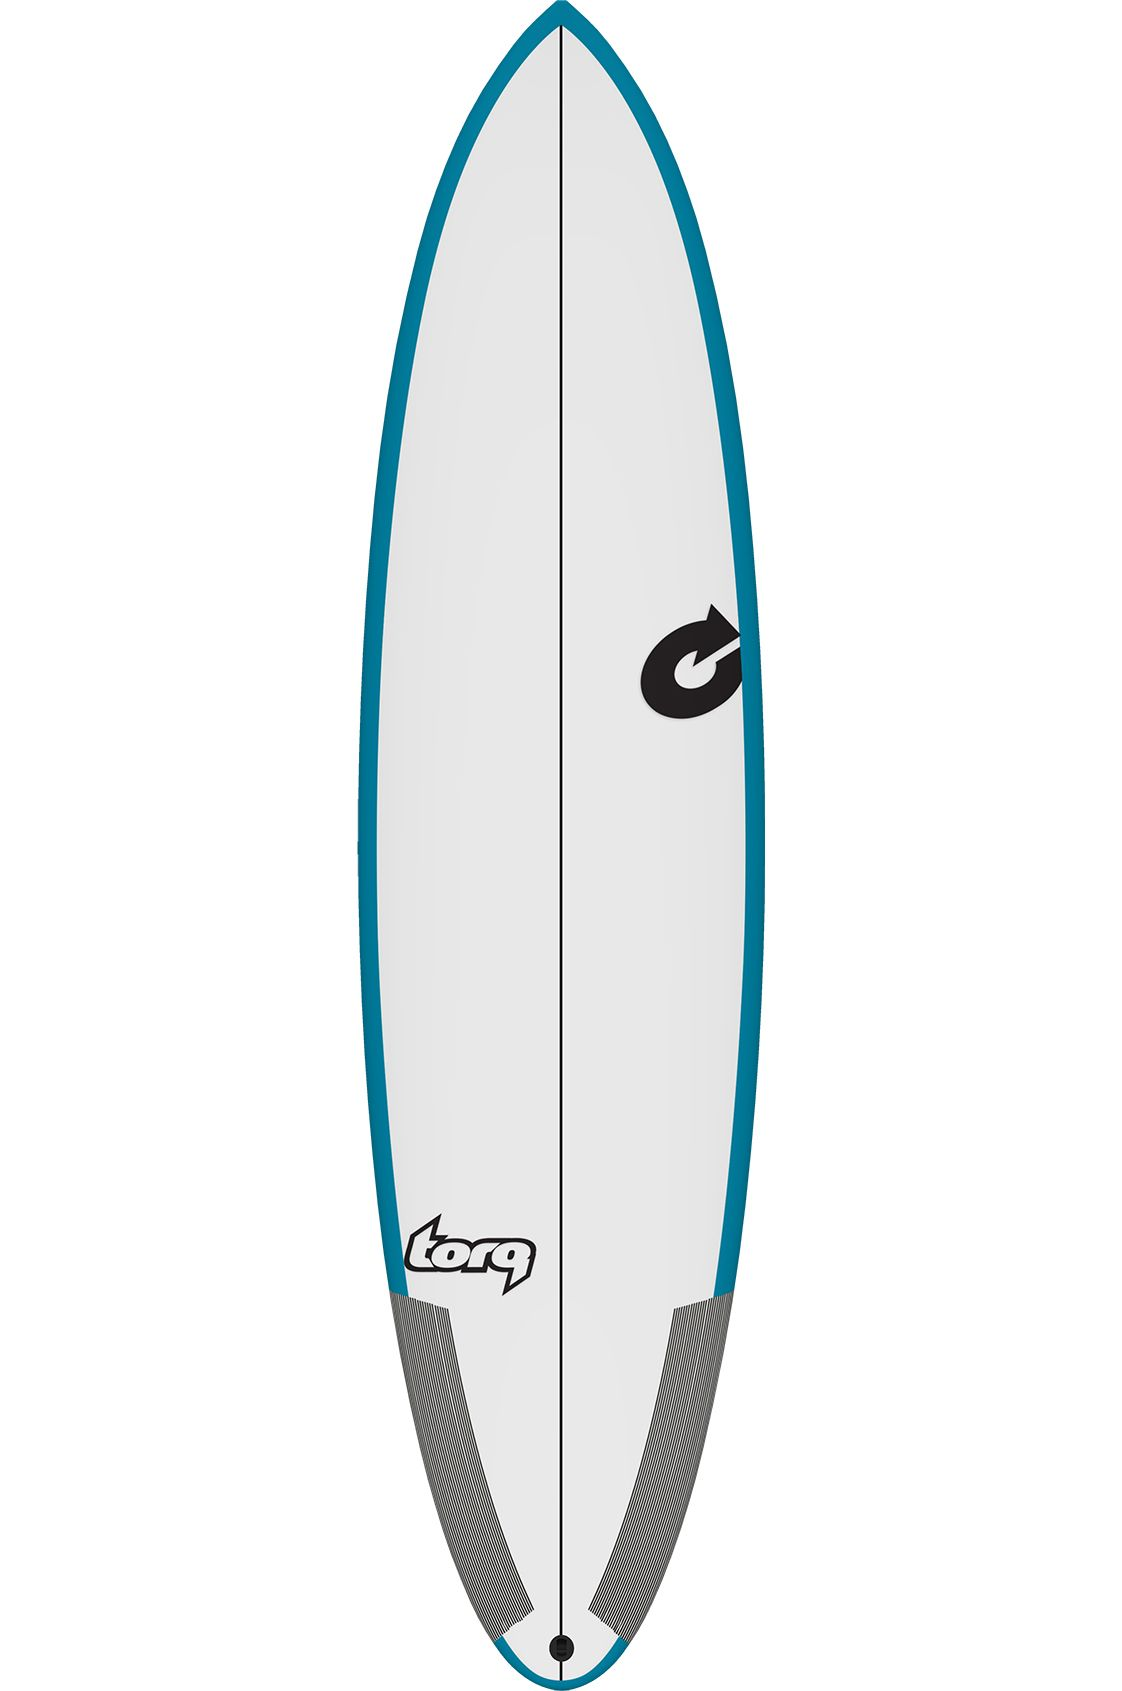 Torq Surf Board 7'0 M2-S TEAL/WHITE Round Tail - Color Futures Multisystem 7ft0